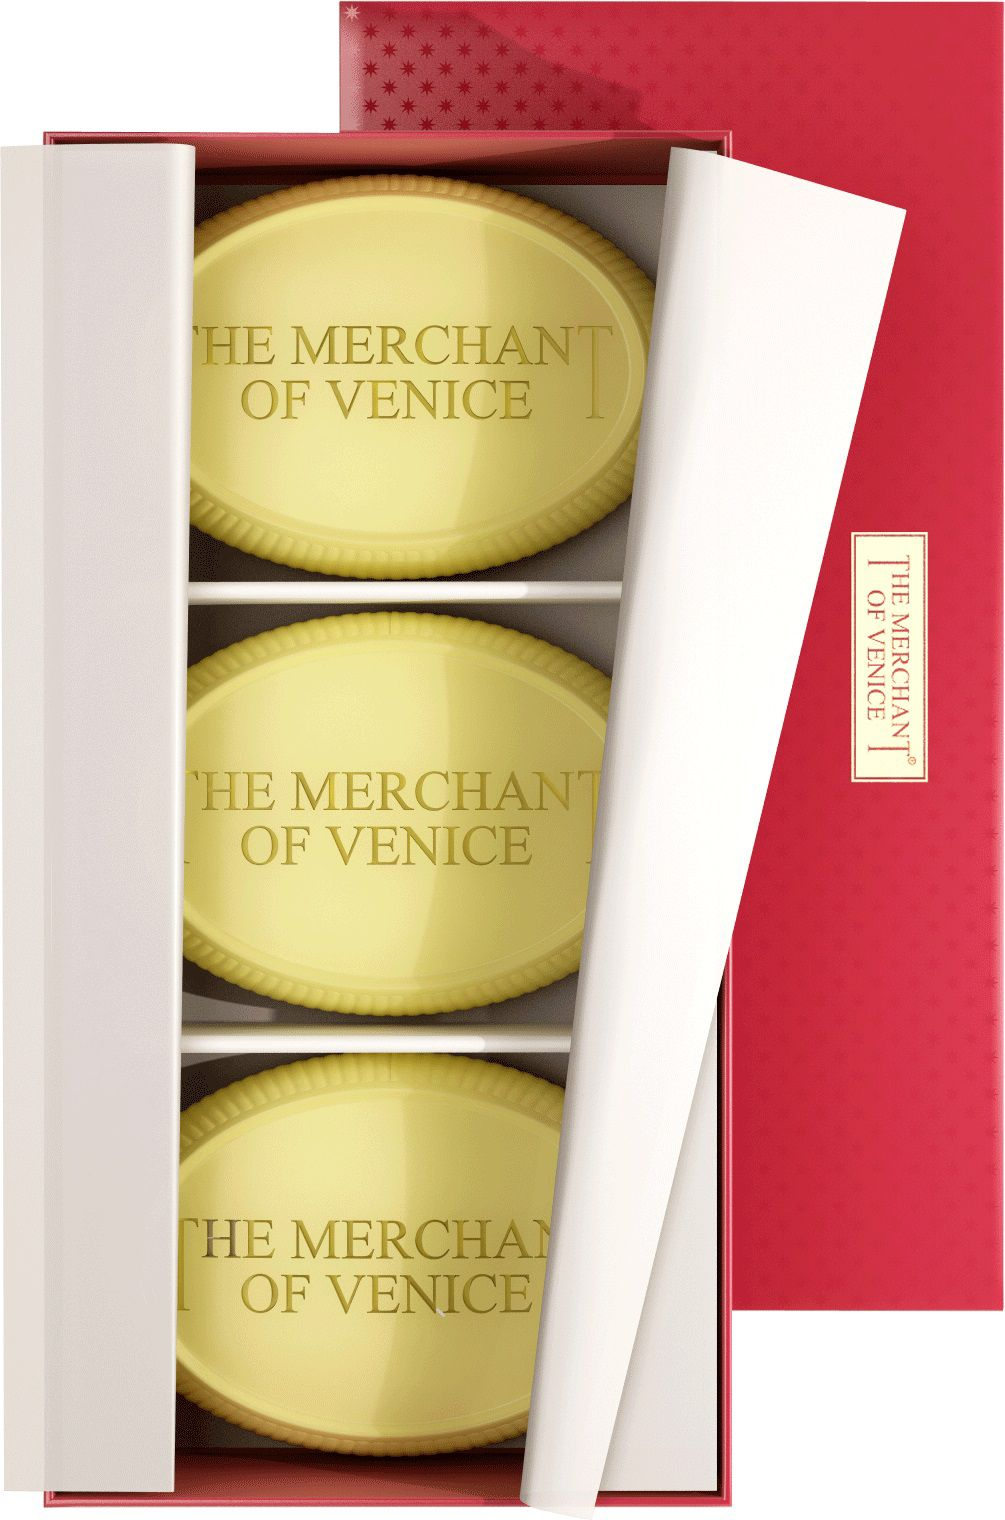 The Merchant Of Venice The Merchant Of Venice Set of Assorted Floral Bath Soaps 200g x 3